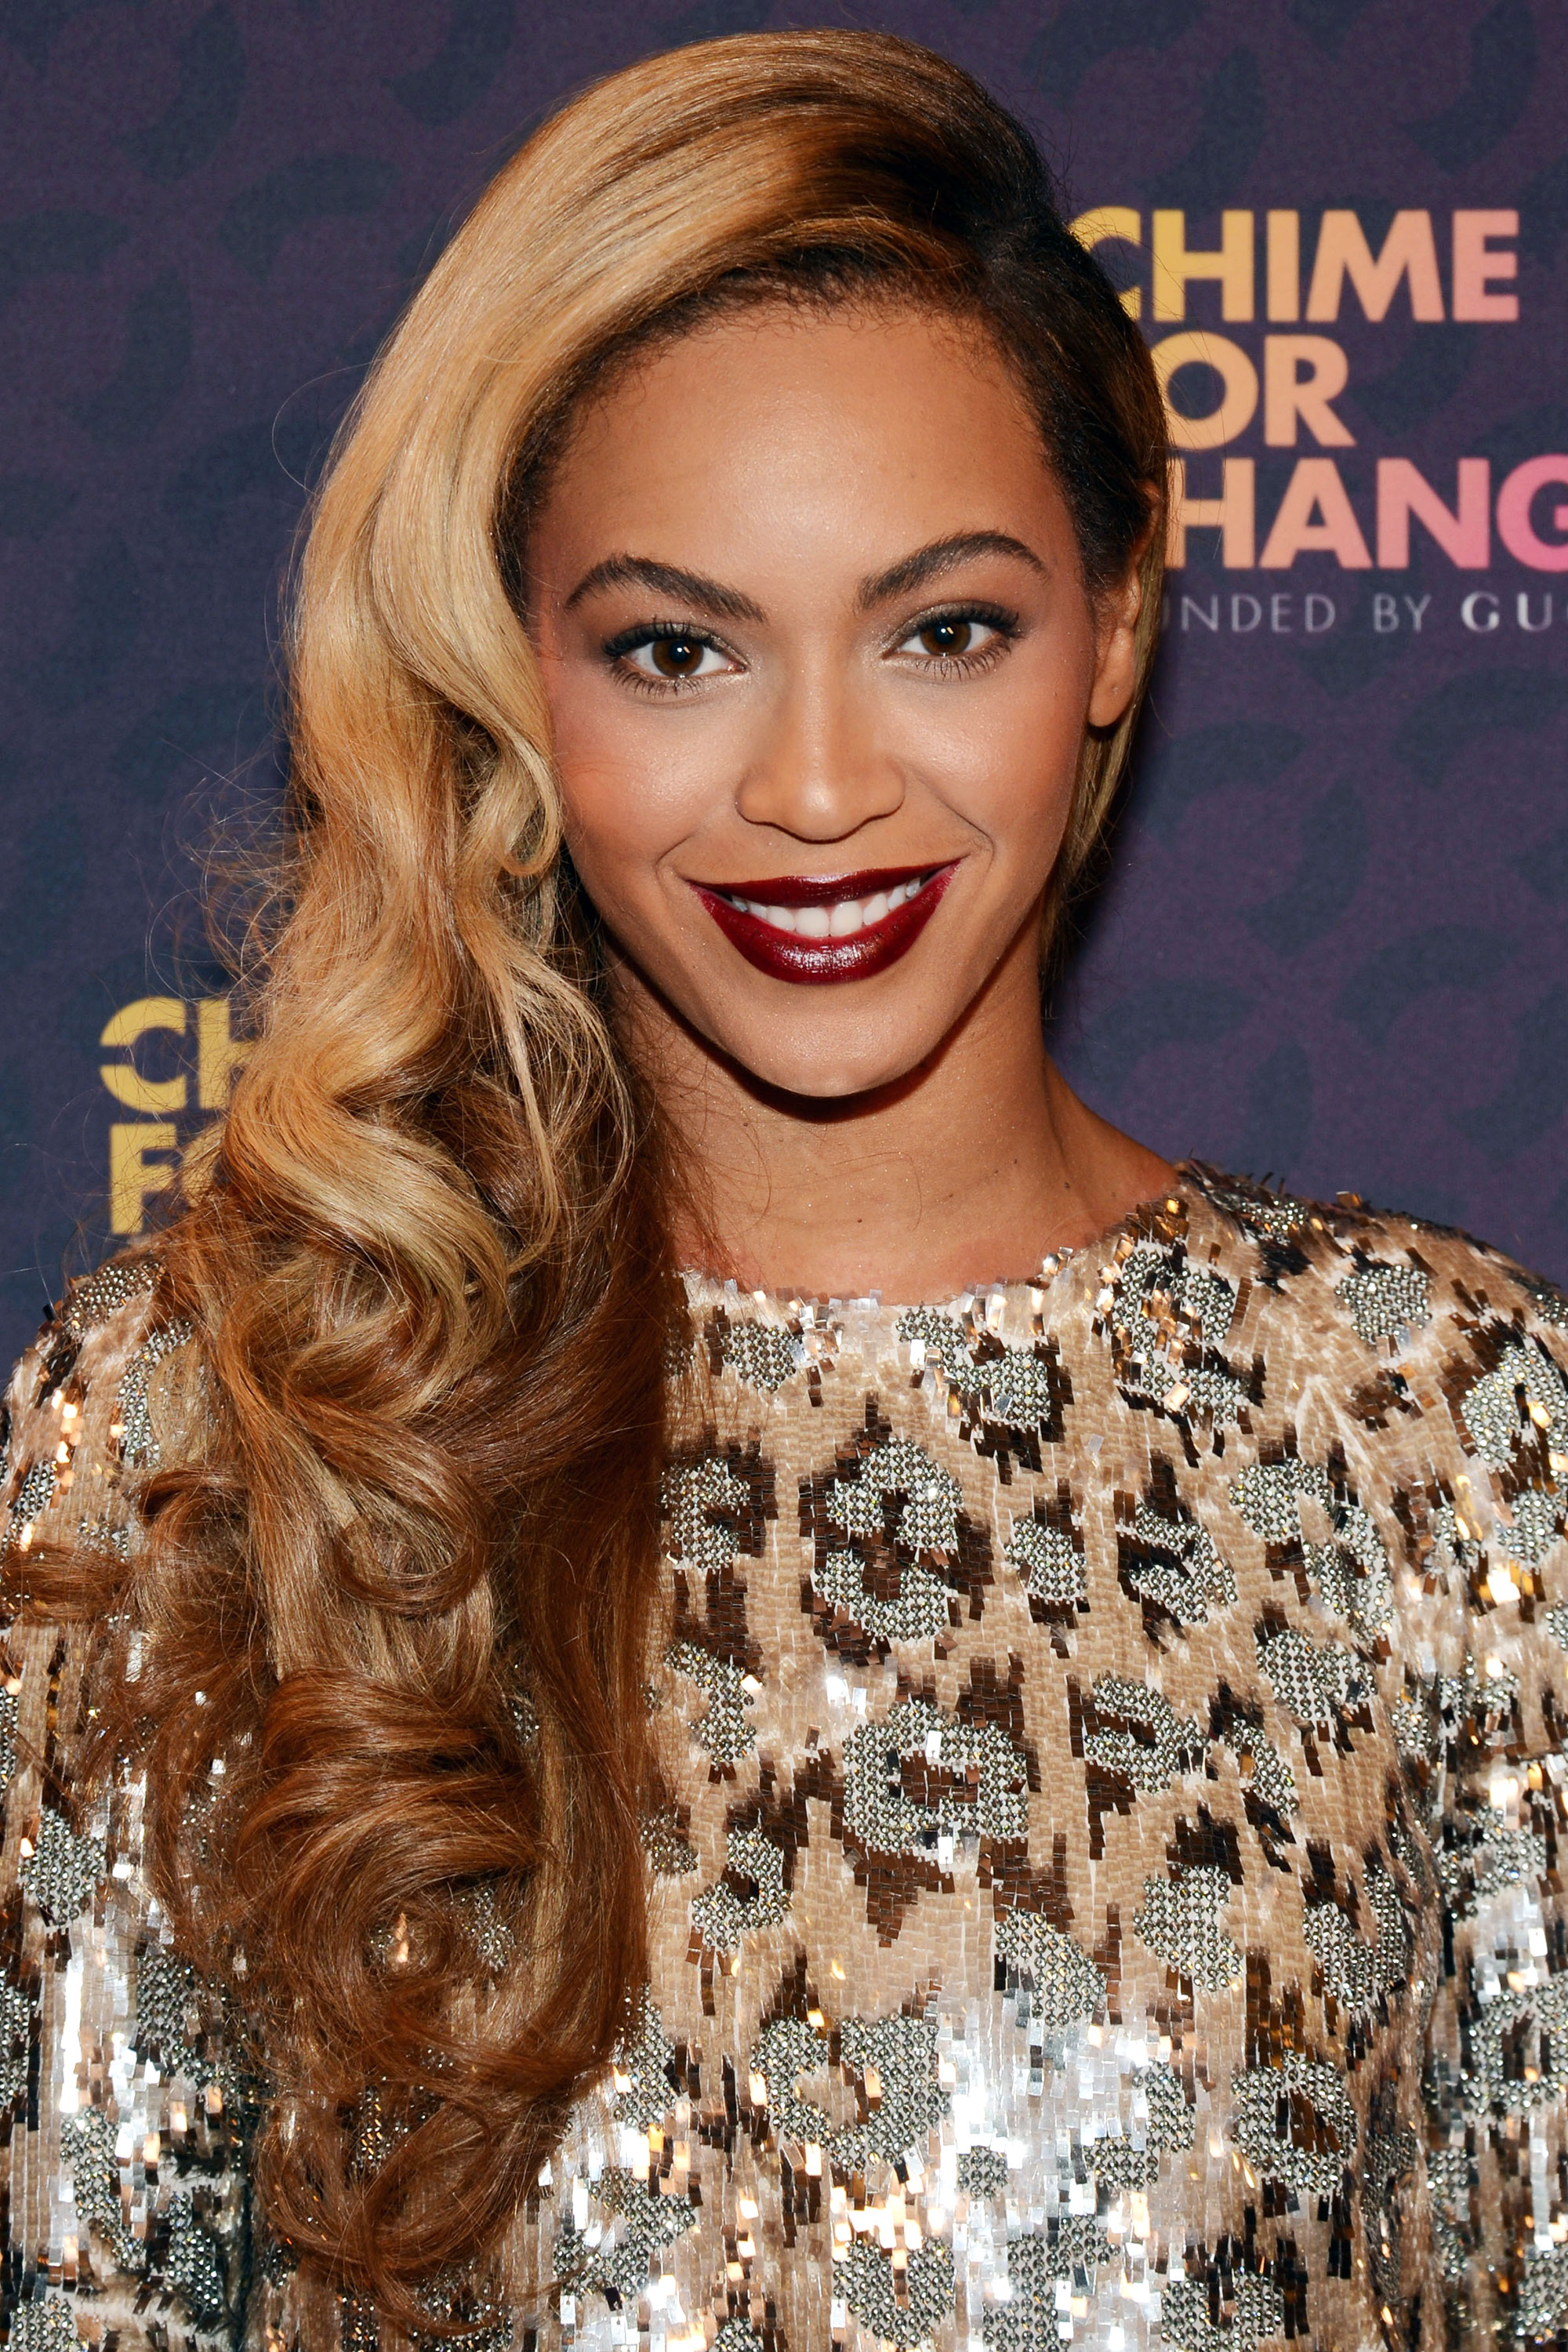 Fabulous 40 Beyonce Hairstyles Beyonce39S Real Hair Long Hair And Short Short Hairstyles For Black Women Fulllsitofus